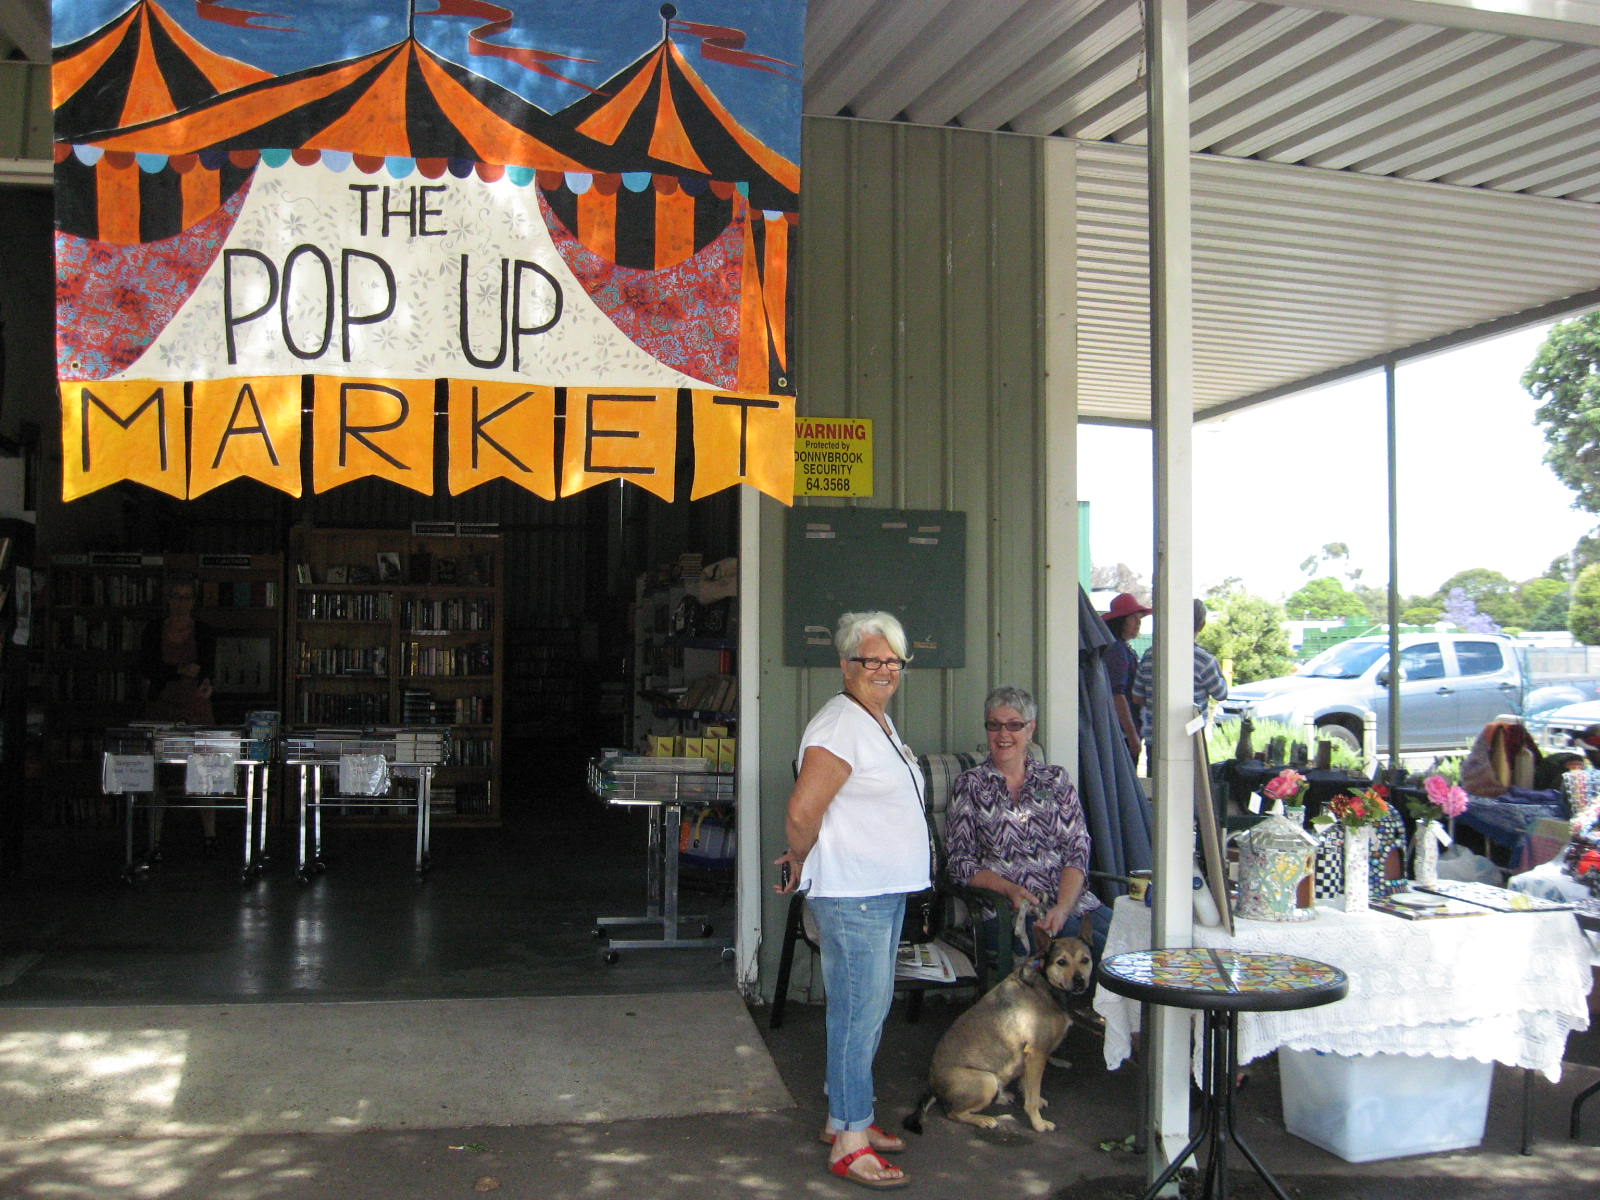 pop upmarket  showing our banner